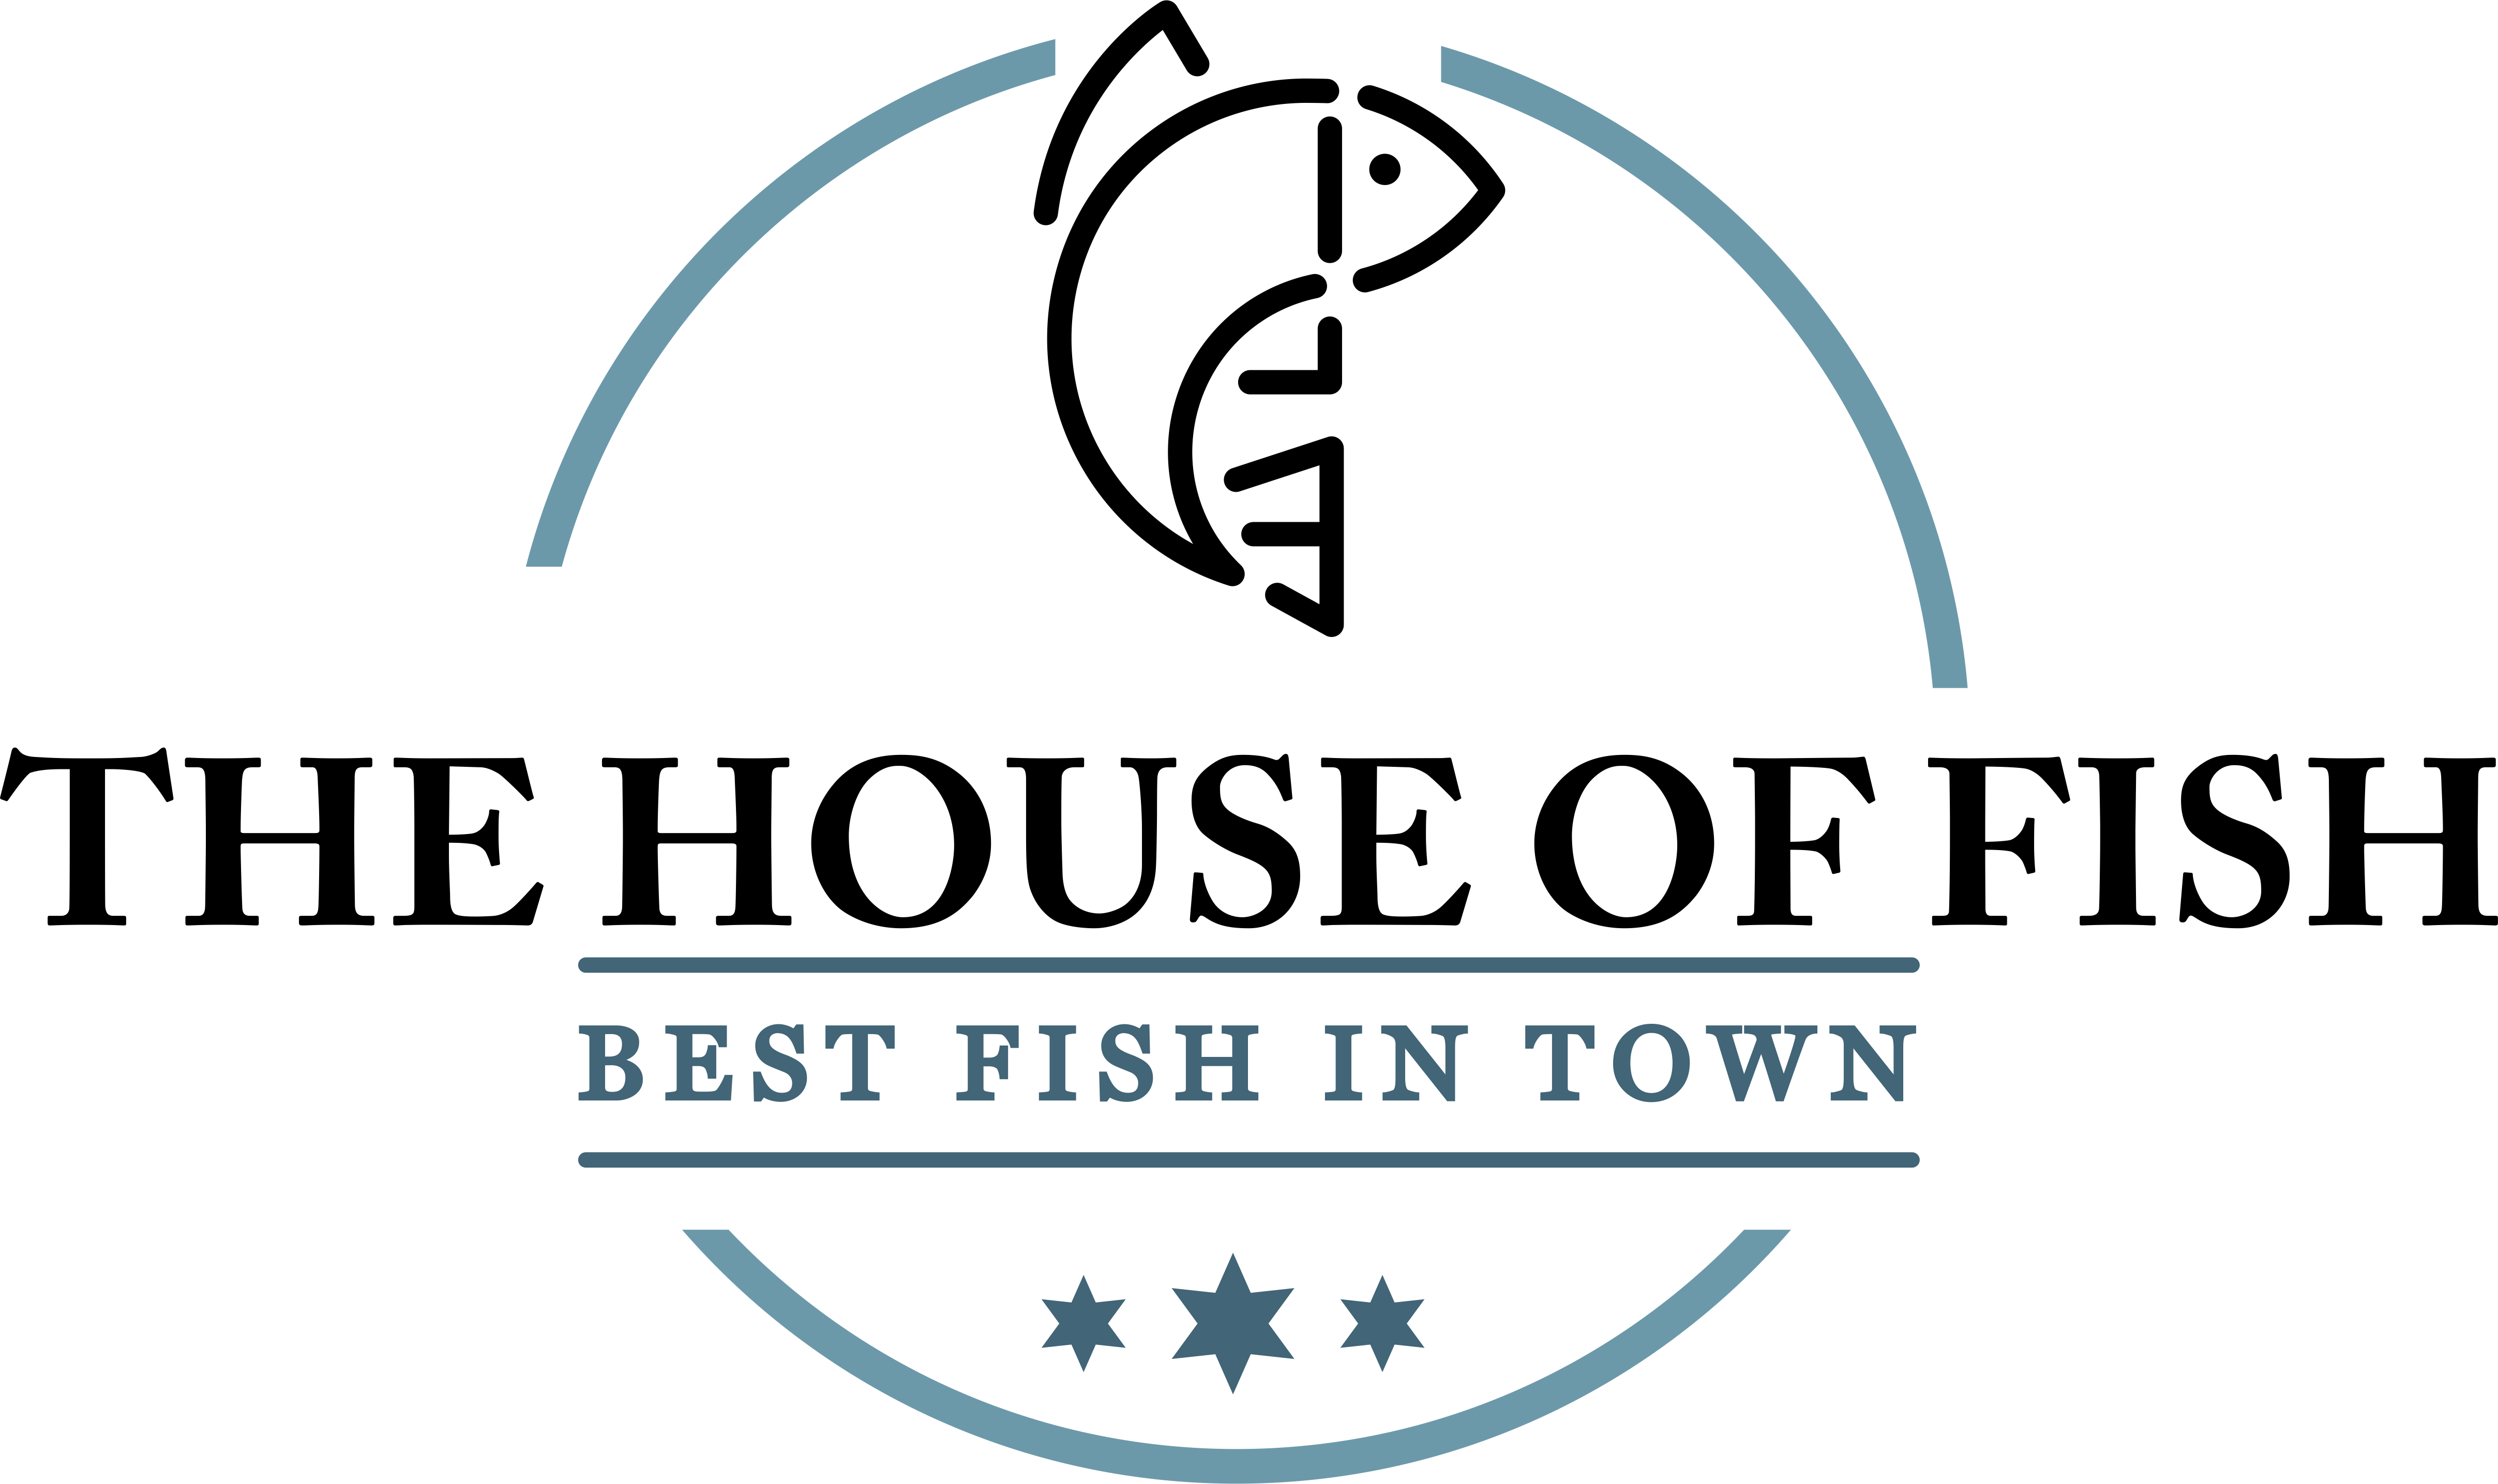 THE HOUSE OF FISH